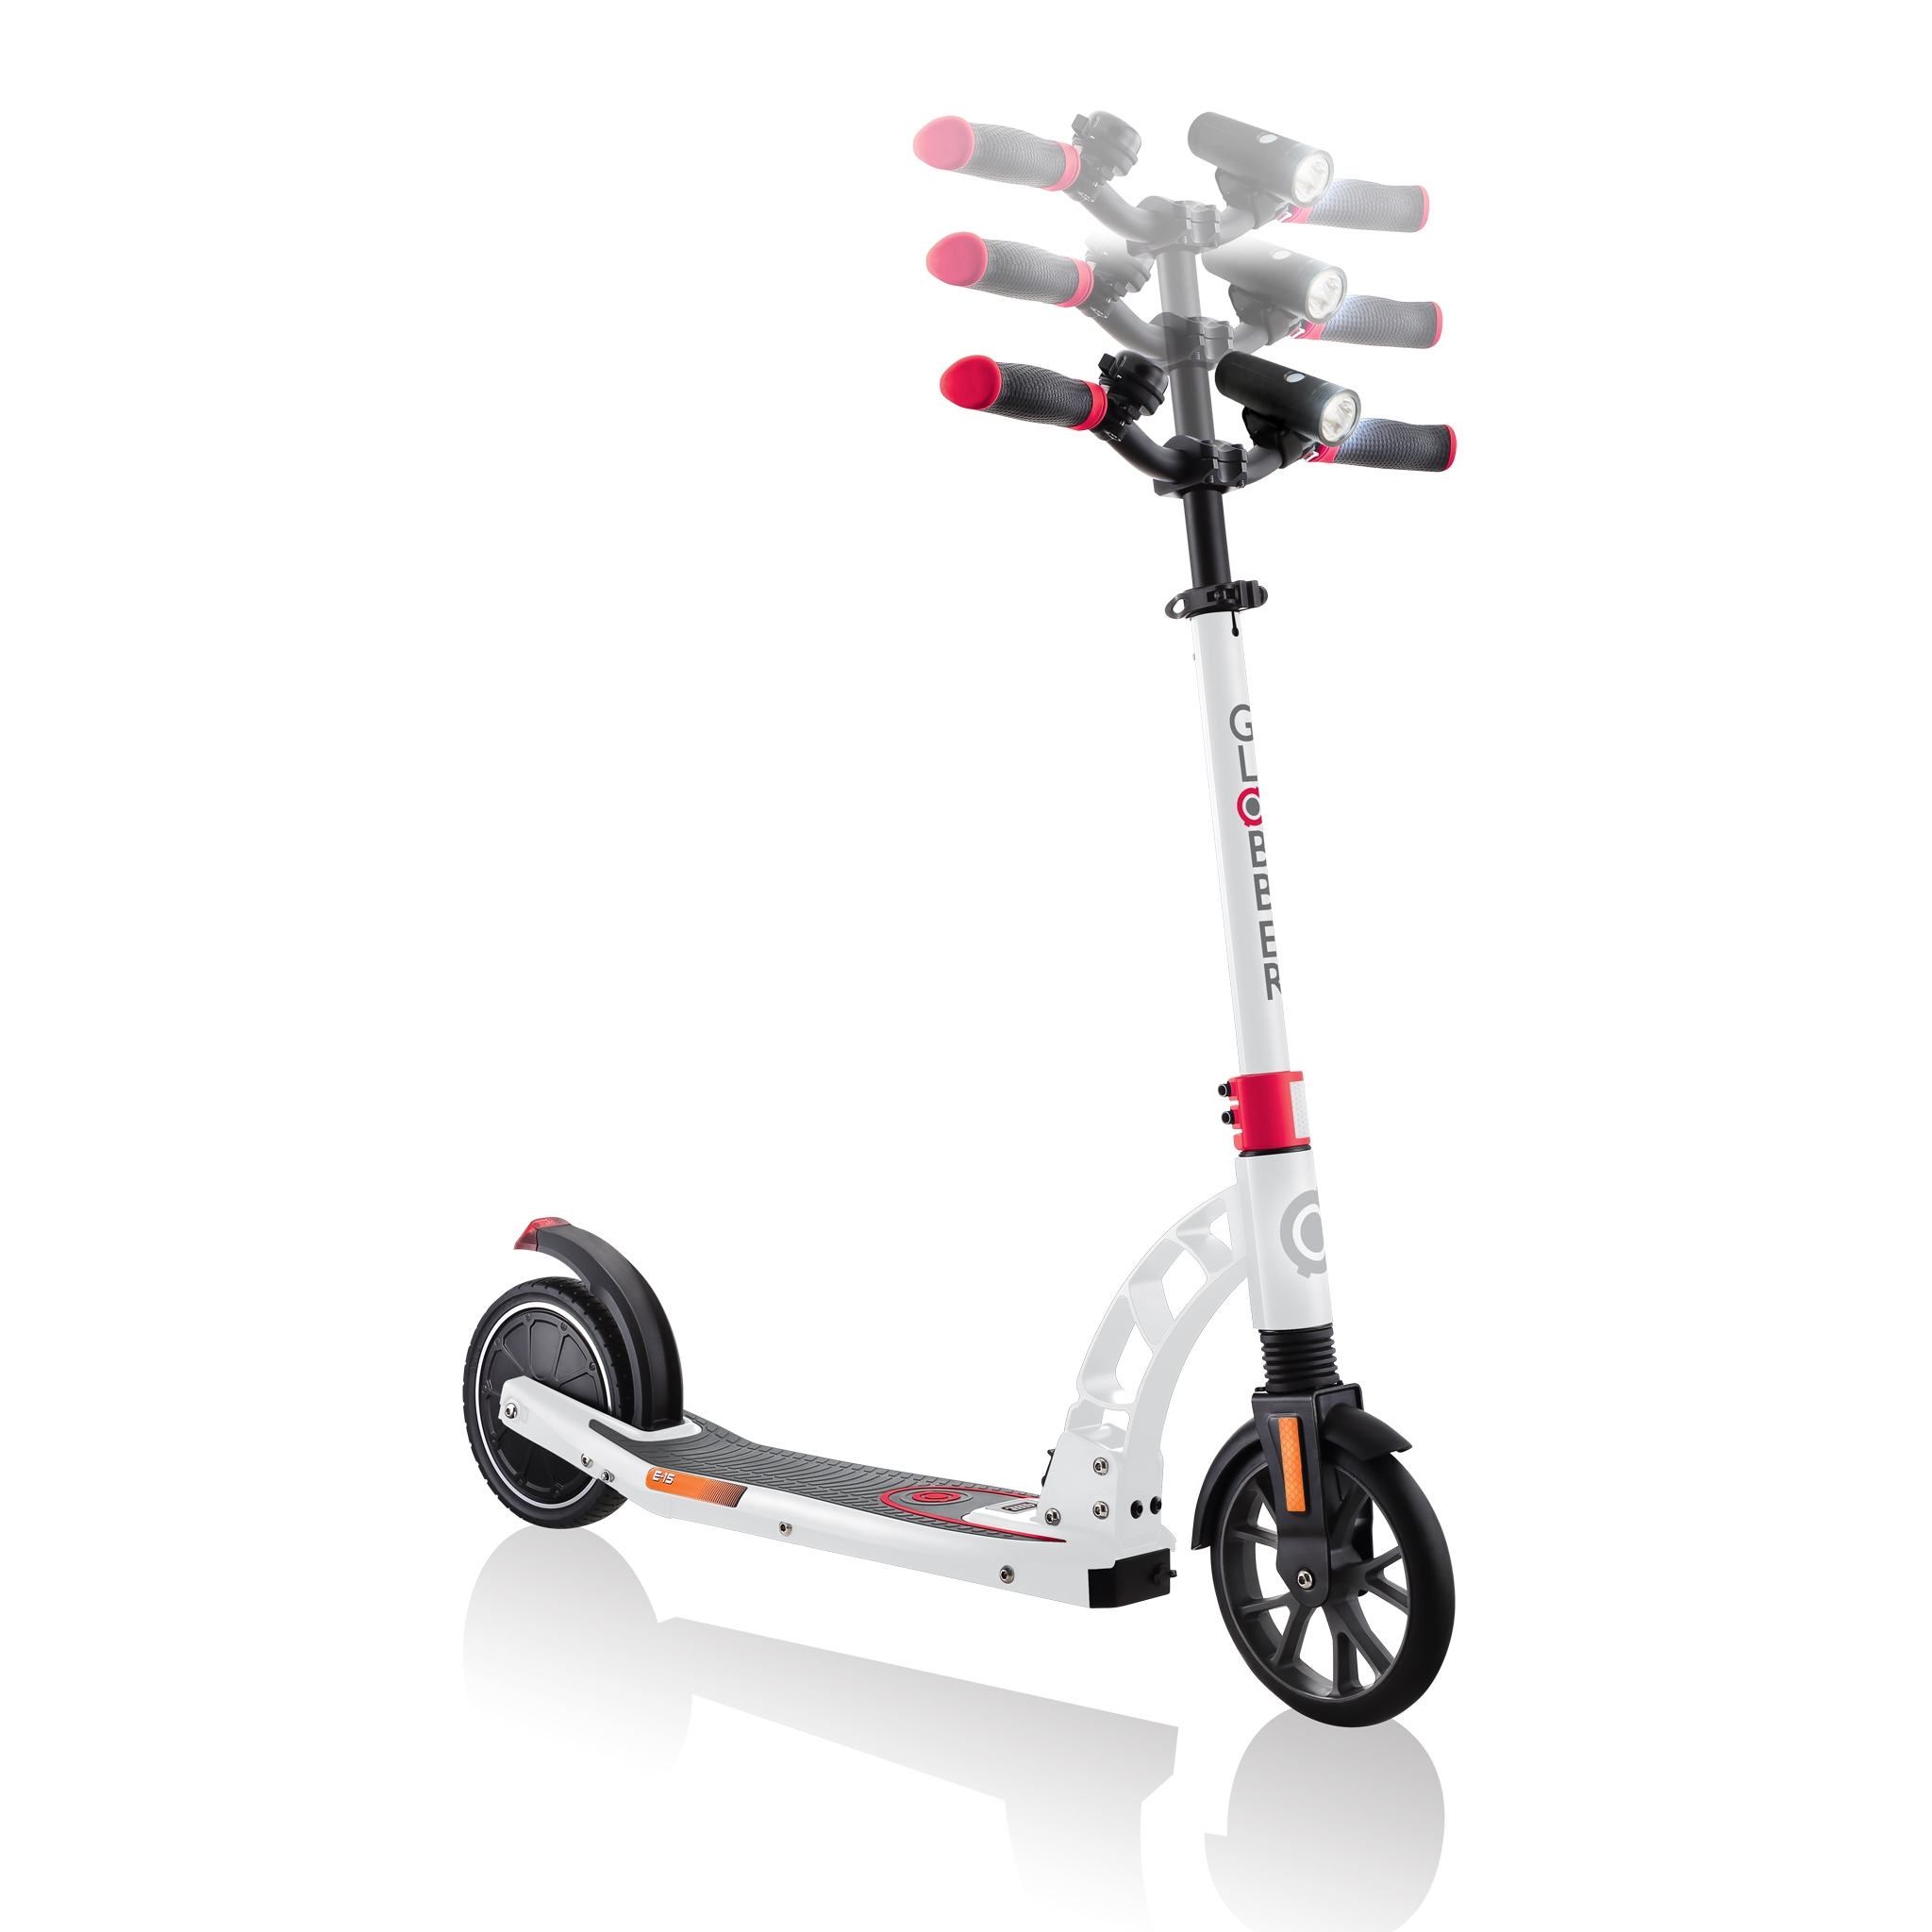 Globber-ONE-K-E-MOTION-15-3-height-adjustable-electric-scooter-for-adults-and-teens-aged-14-and-above 3